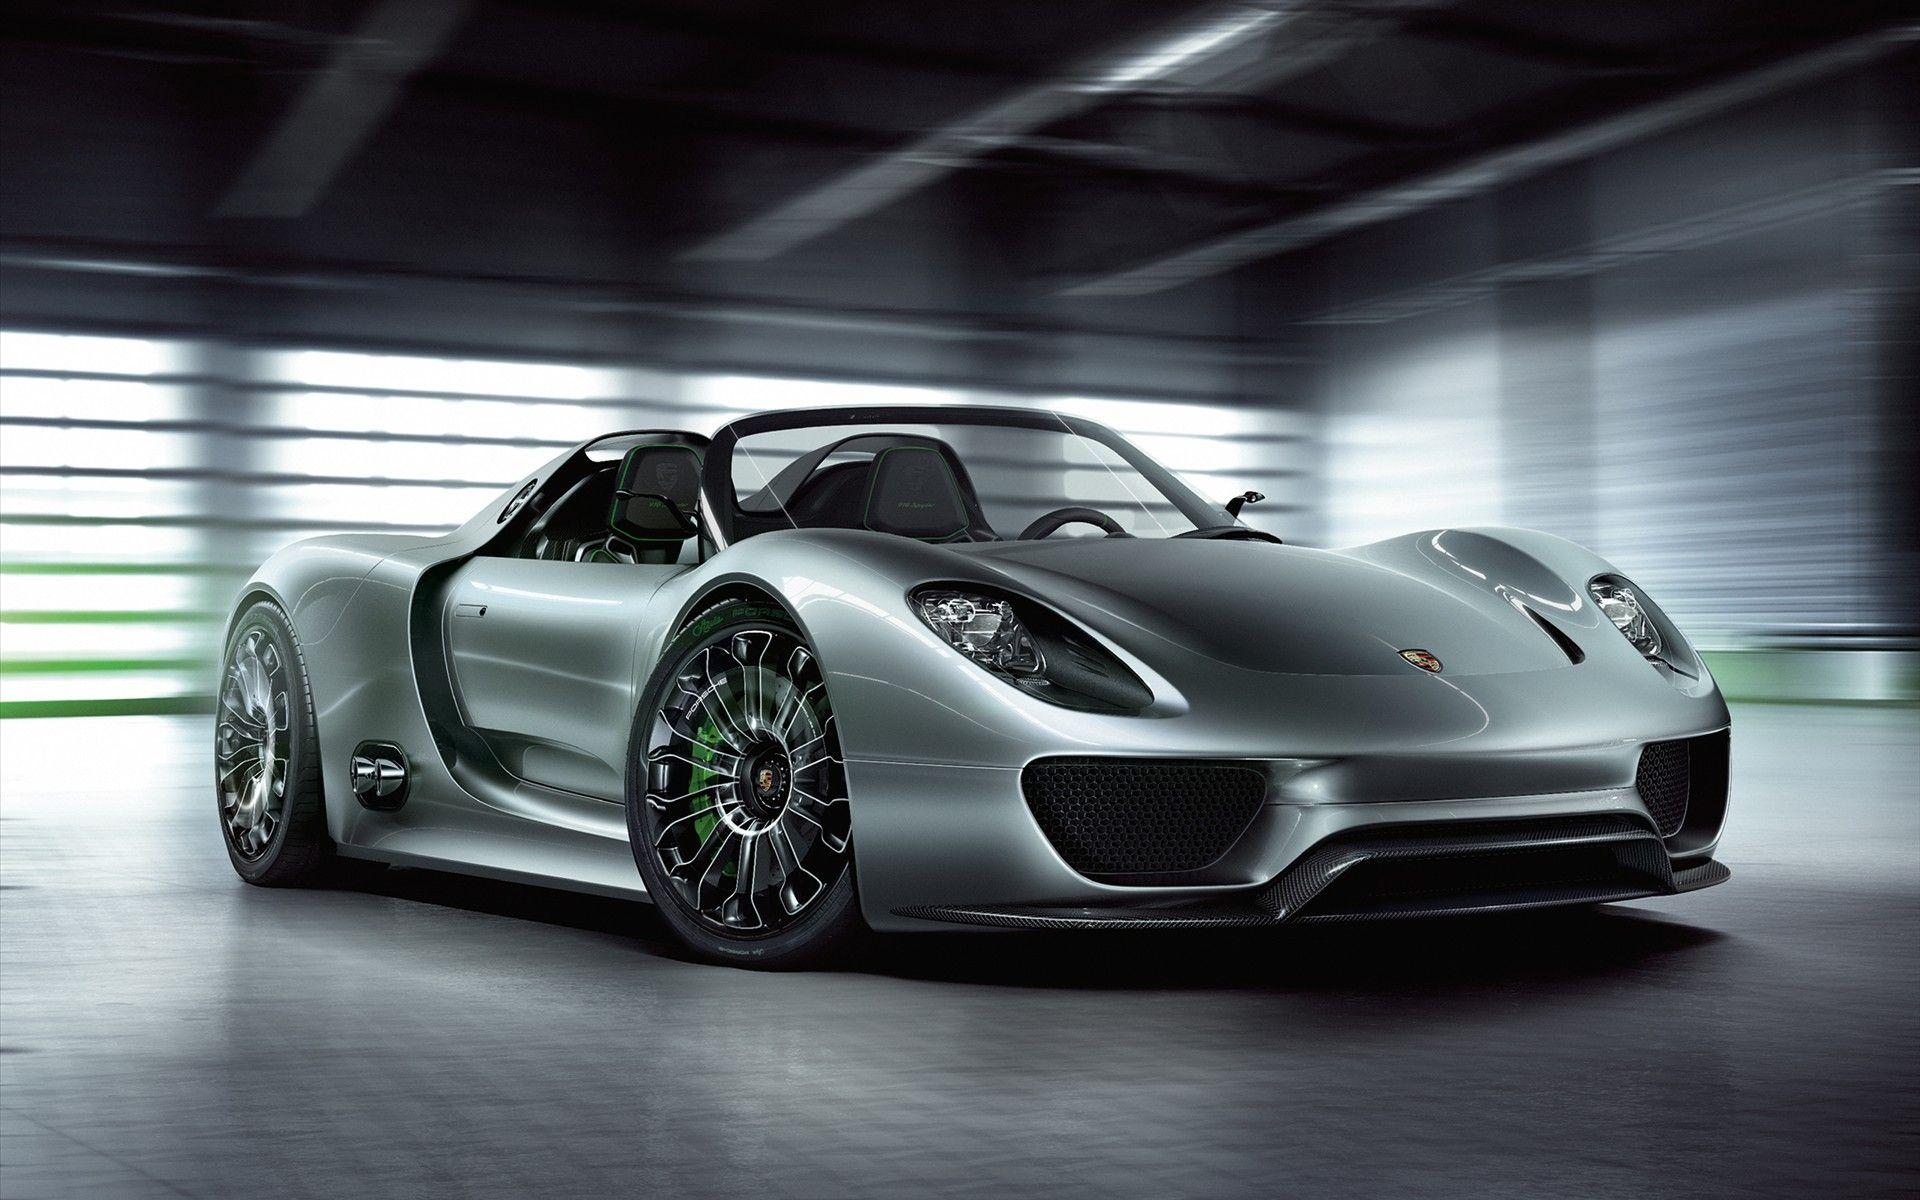 Daily Wallpaper: Porsche 918 Spyder Wallpaper | I Like To Waste My ...